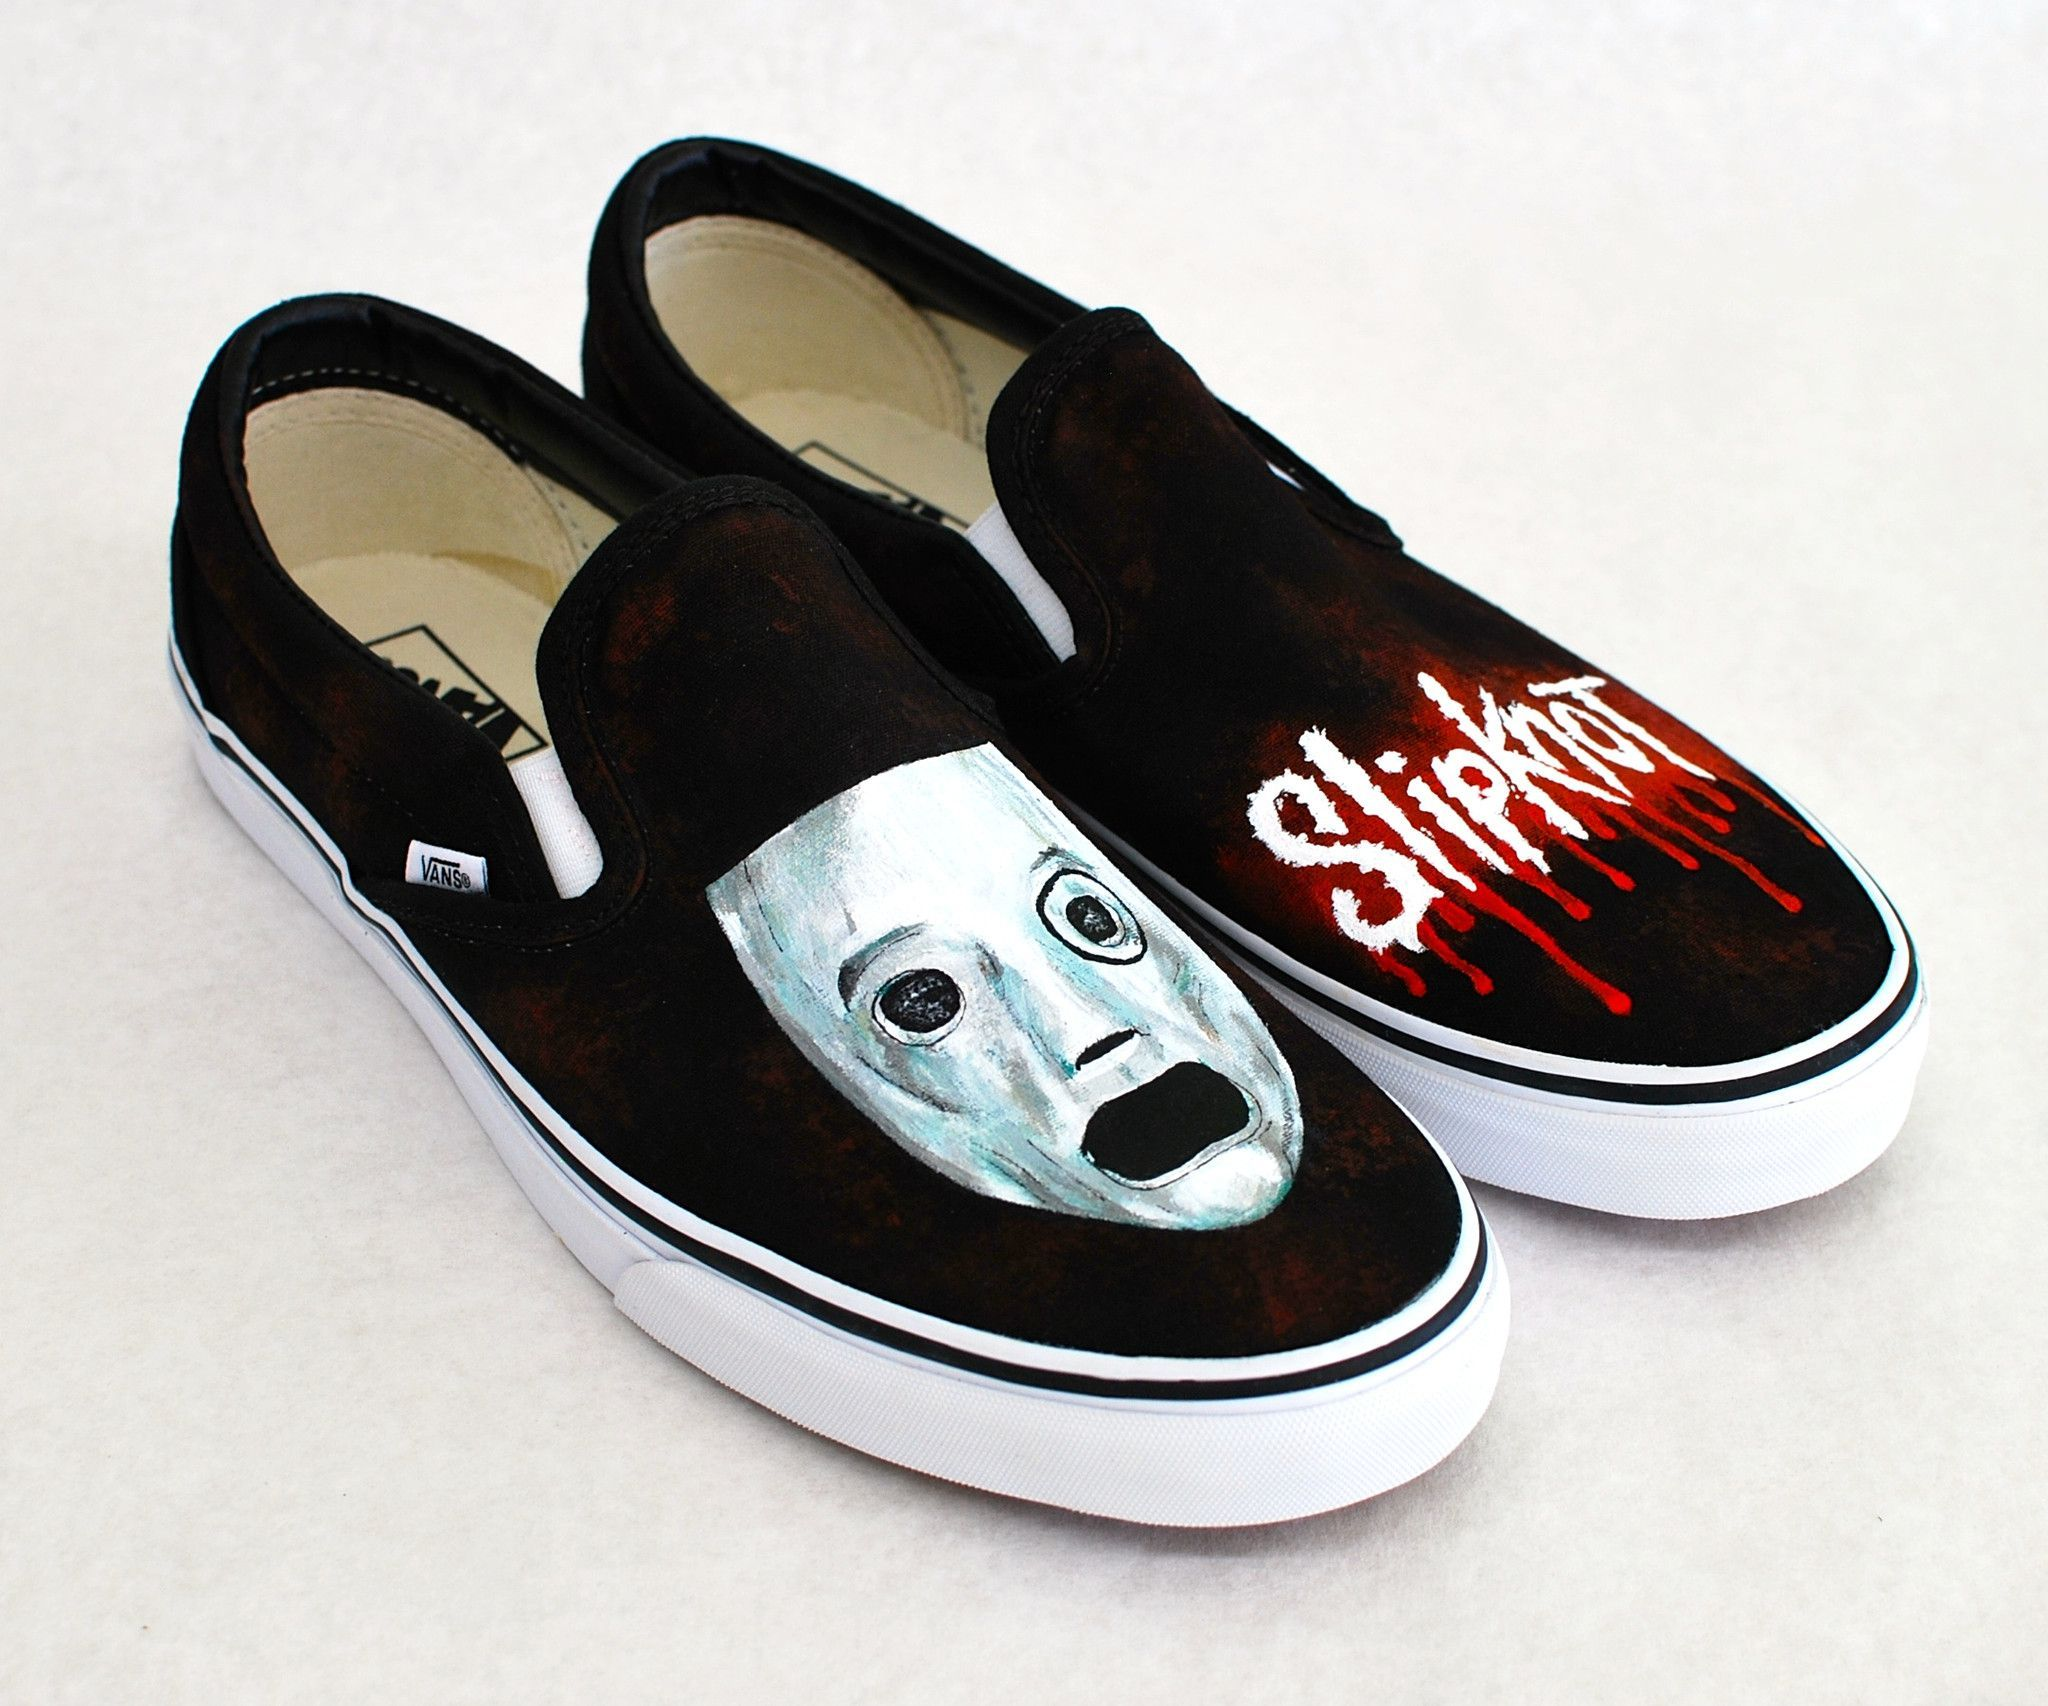 These black canvas Vans Slip ons are Slipknot theme. The shoes feature the Corey mask on one shoe and a Slipknot style logo on the other shoe. Both shoes are covered in a hand painted red blood patter